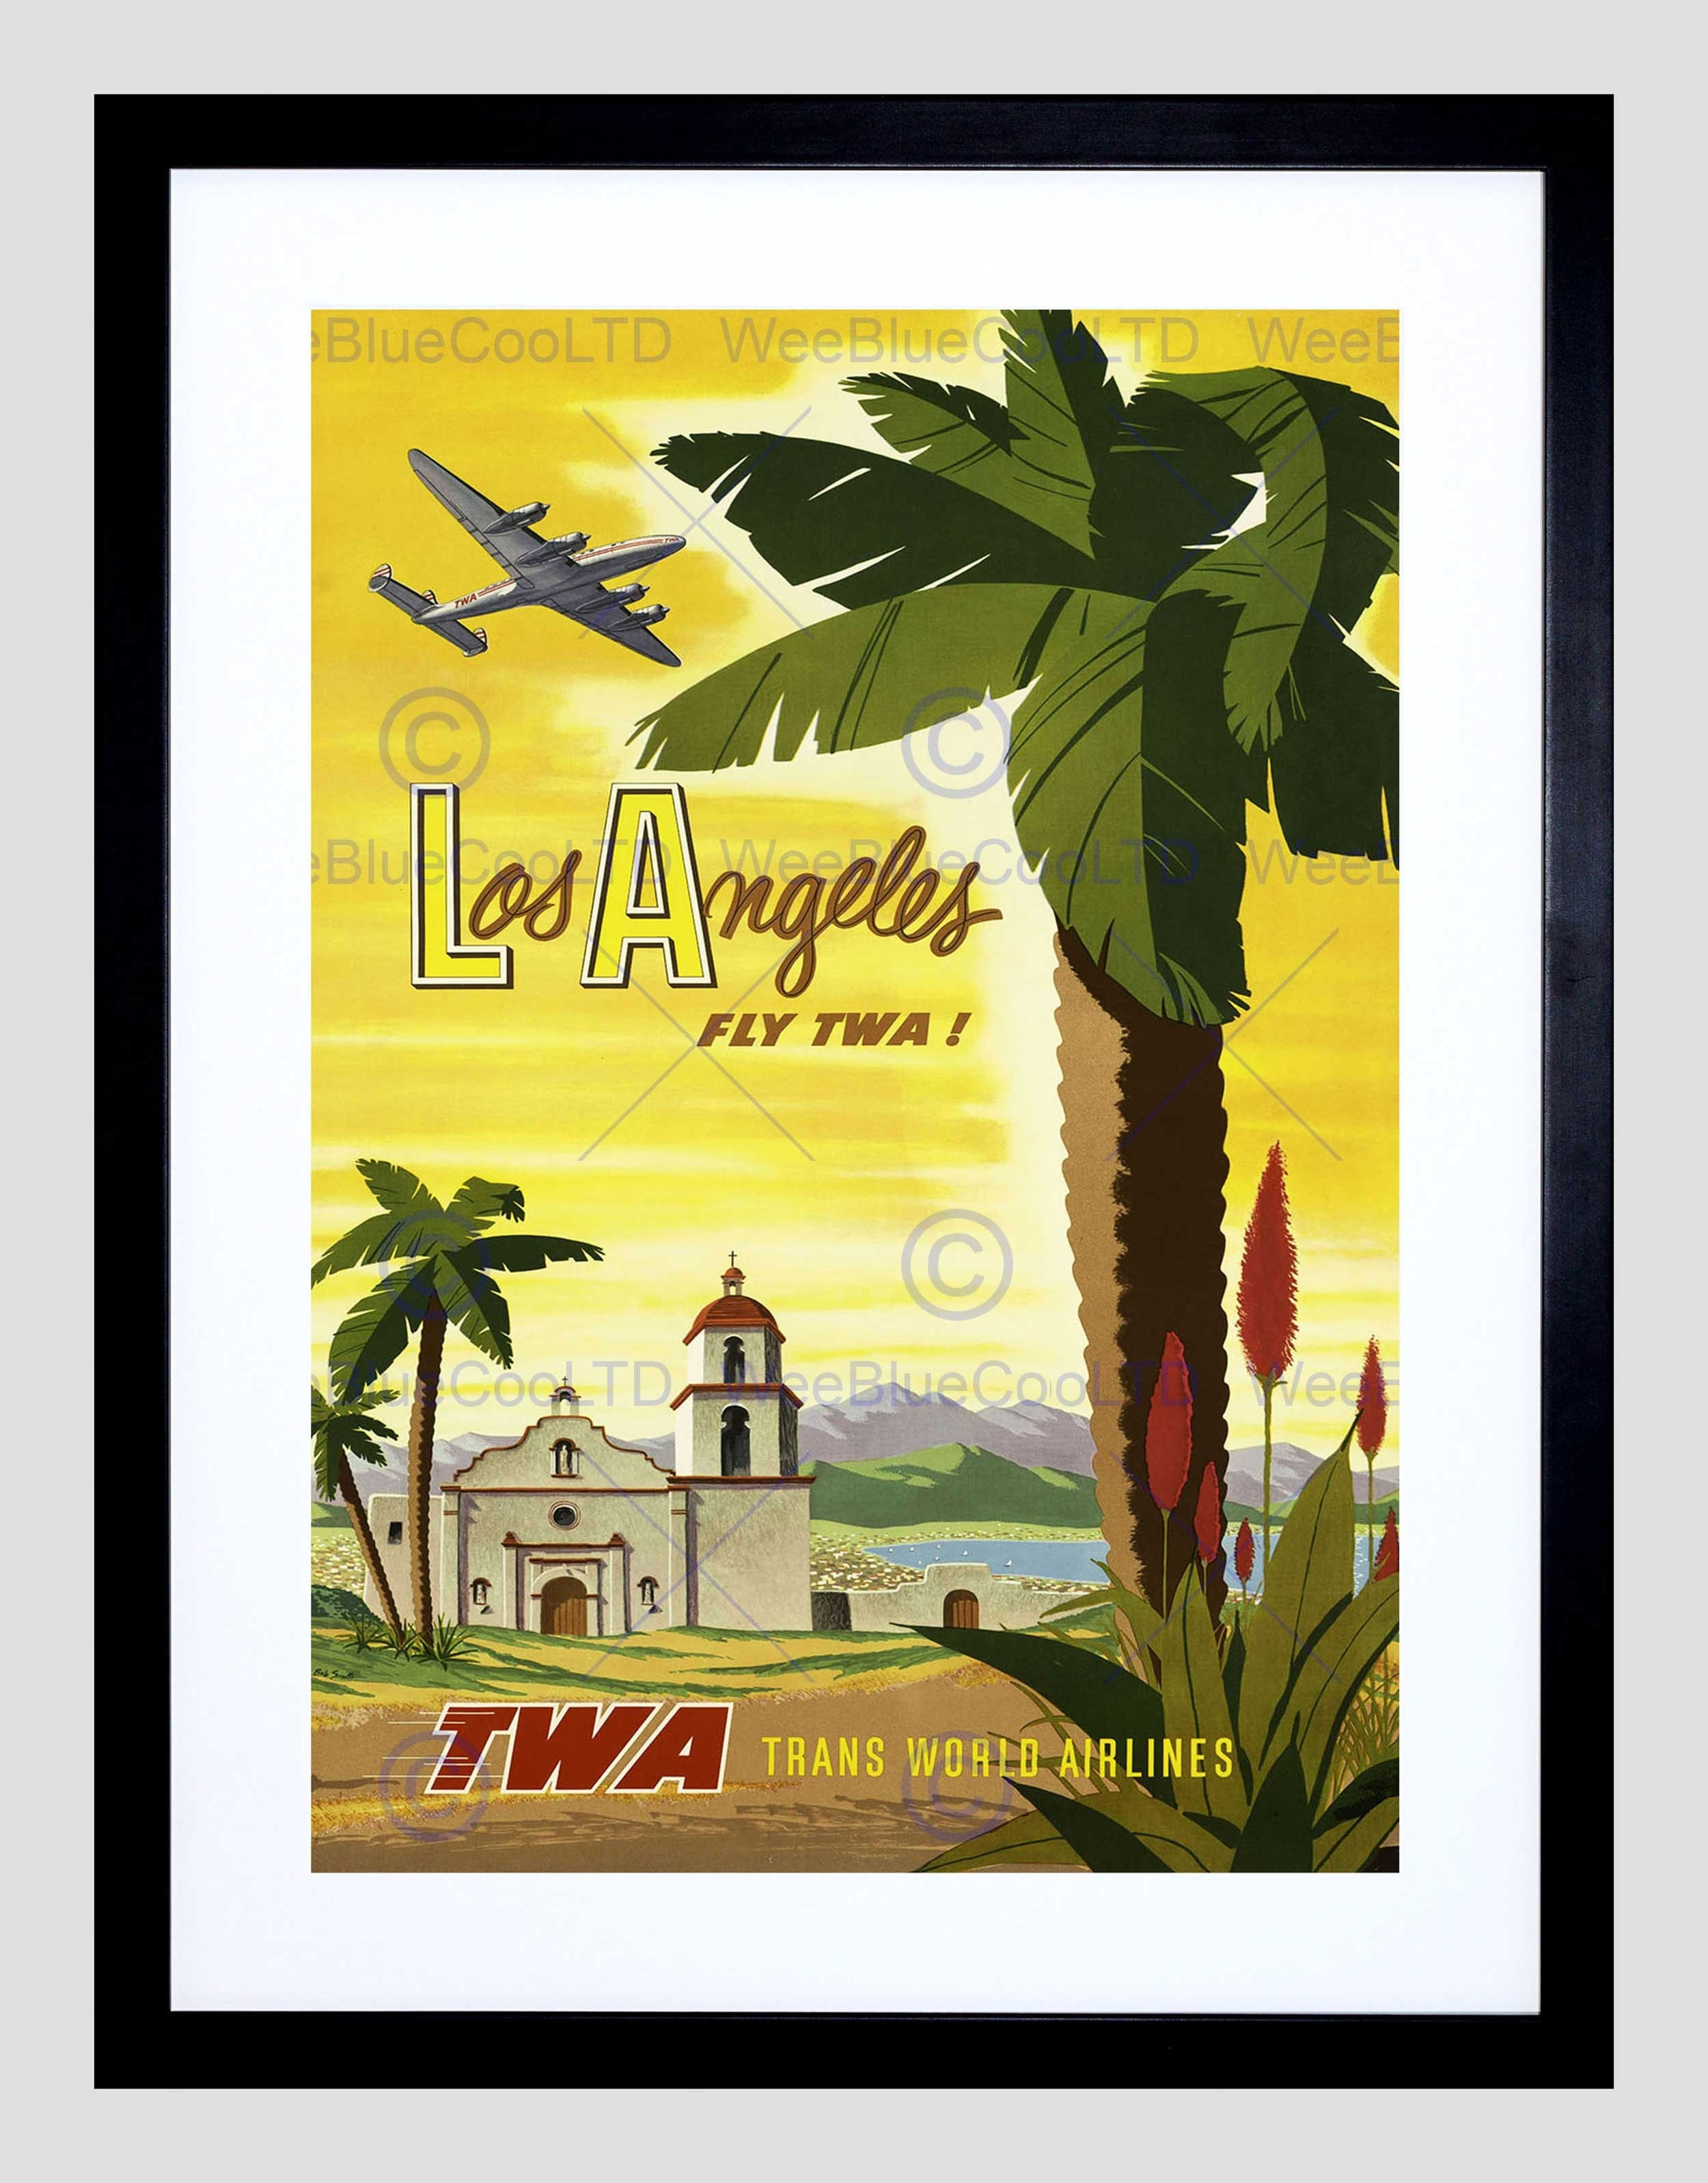 Travel Twa Airline Los Angeles California Palm Vintage Framed Art Pertaining To Most Recent Los Angeles Framed Art Prints (Gallery 5 of 15)